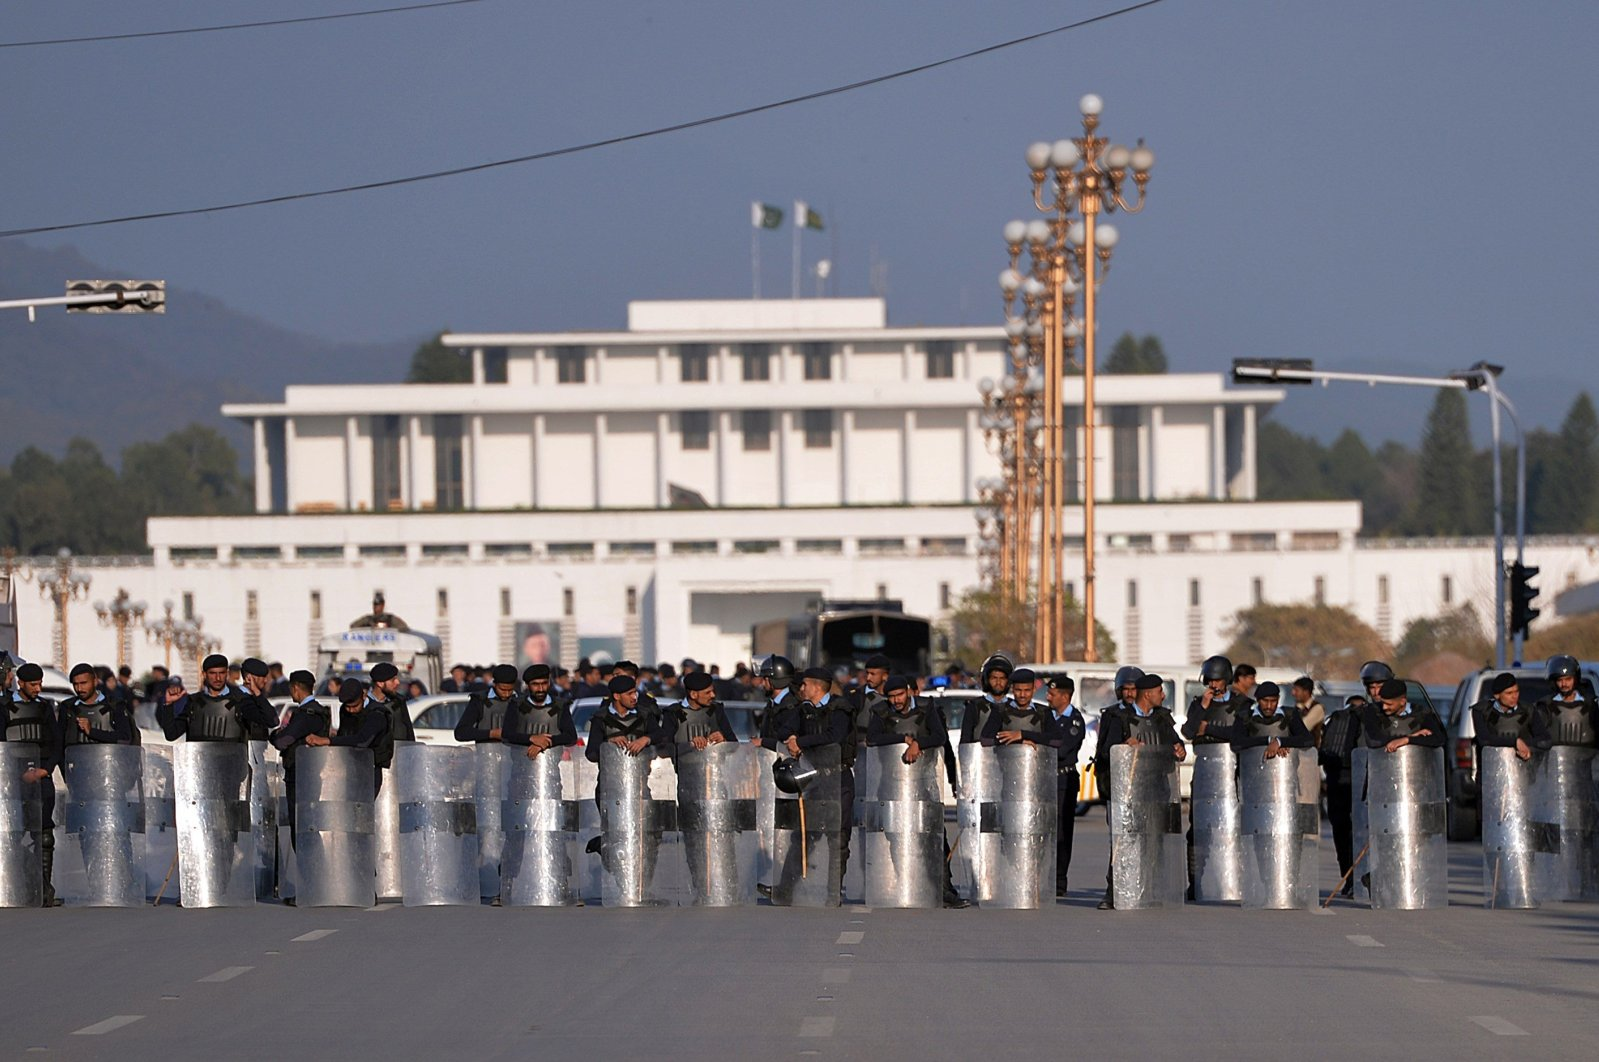 Pakistani police block a street leading to president house during protest rally in Islamabad, Jan. 8, 2016. (AFP Photo)